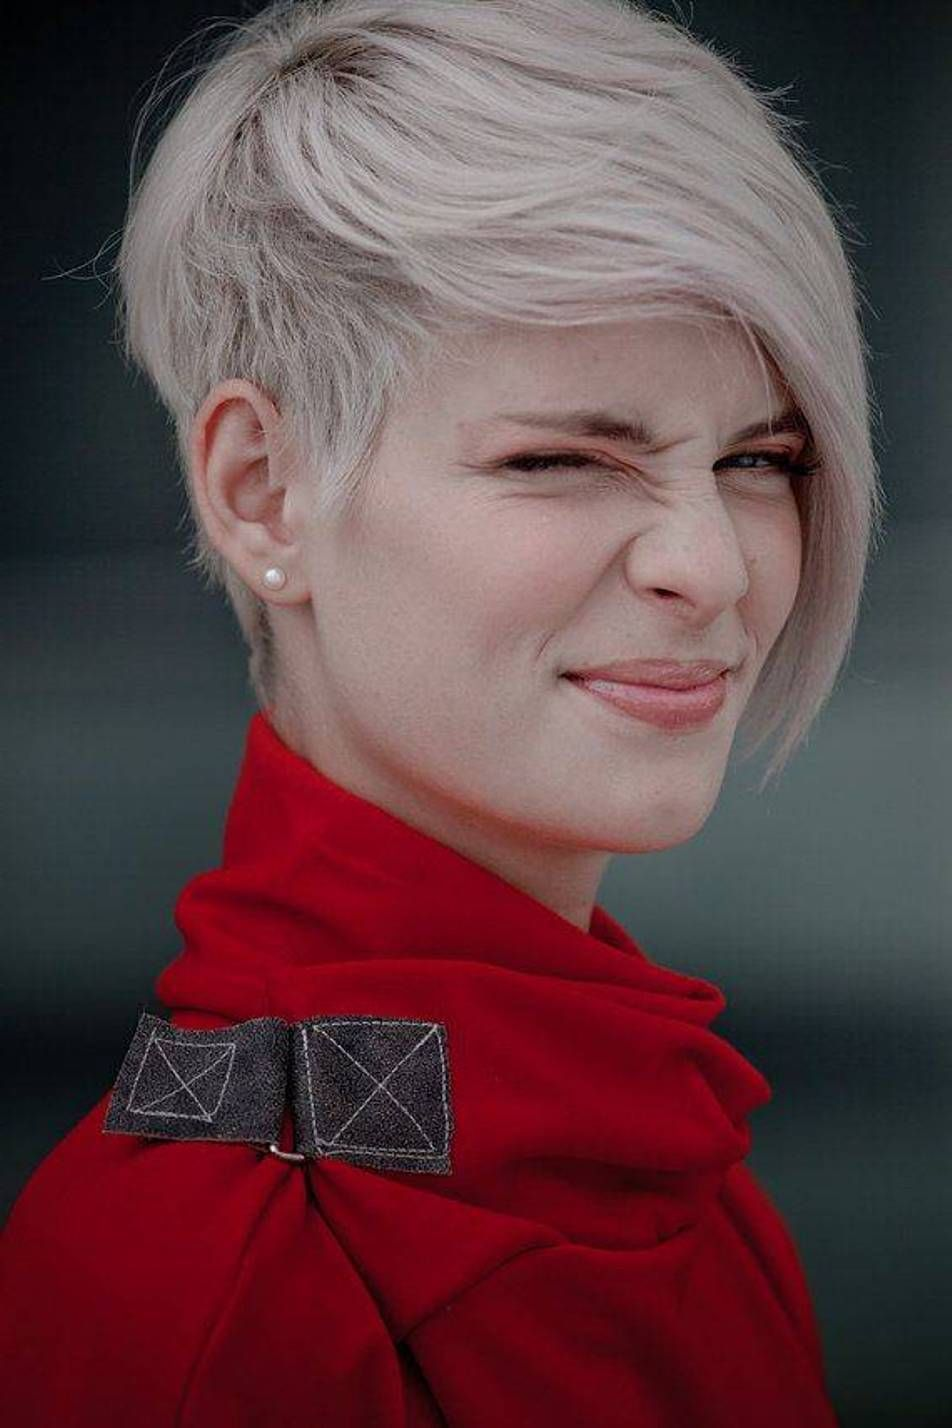 Miraculous 1000 Images About Hair Cuts Short Asymmetrical On Pinterest Short Hairstyles Gunalazisus